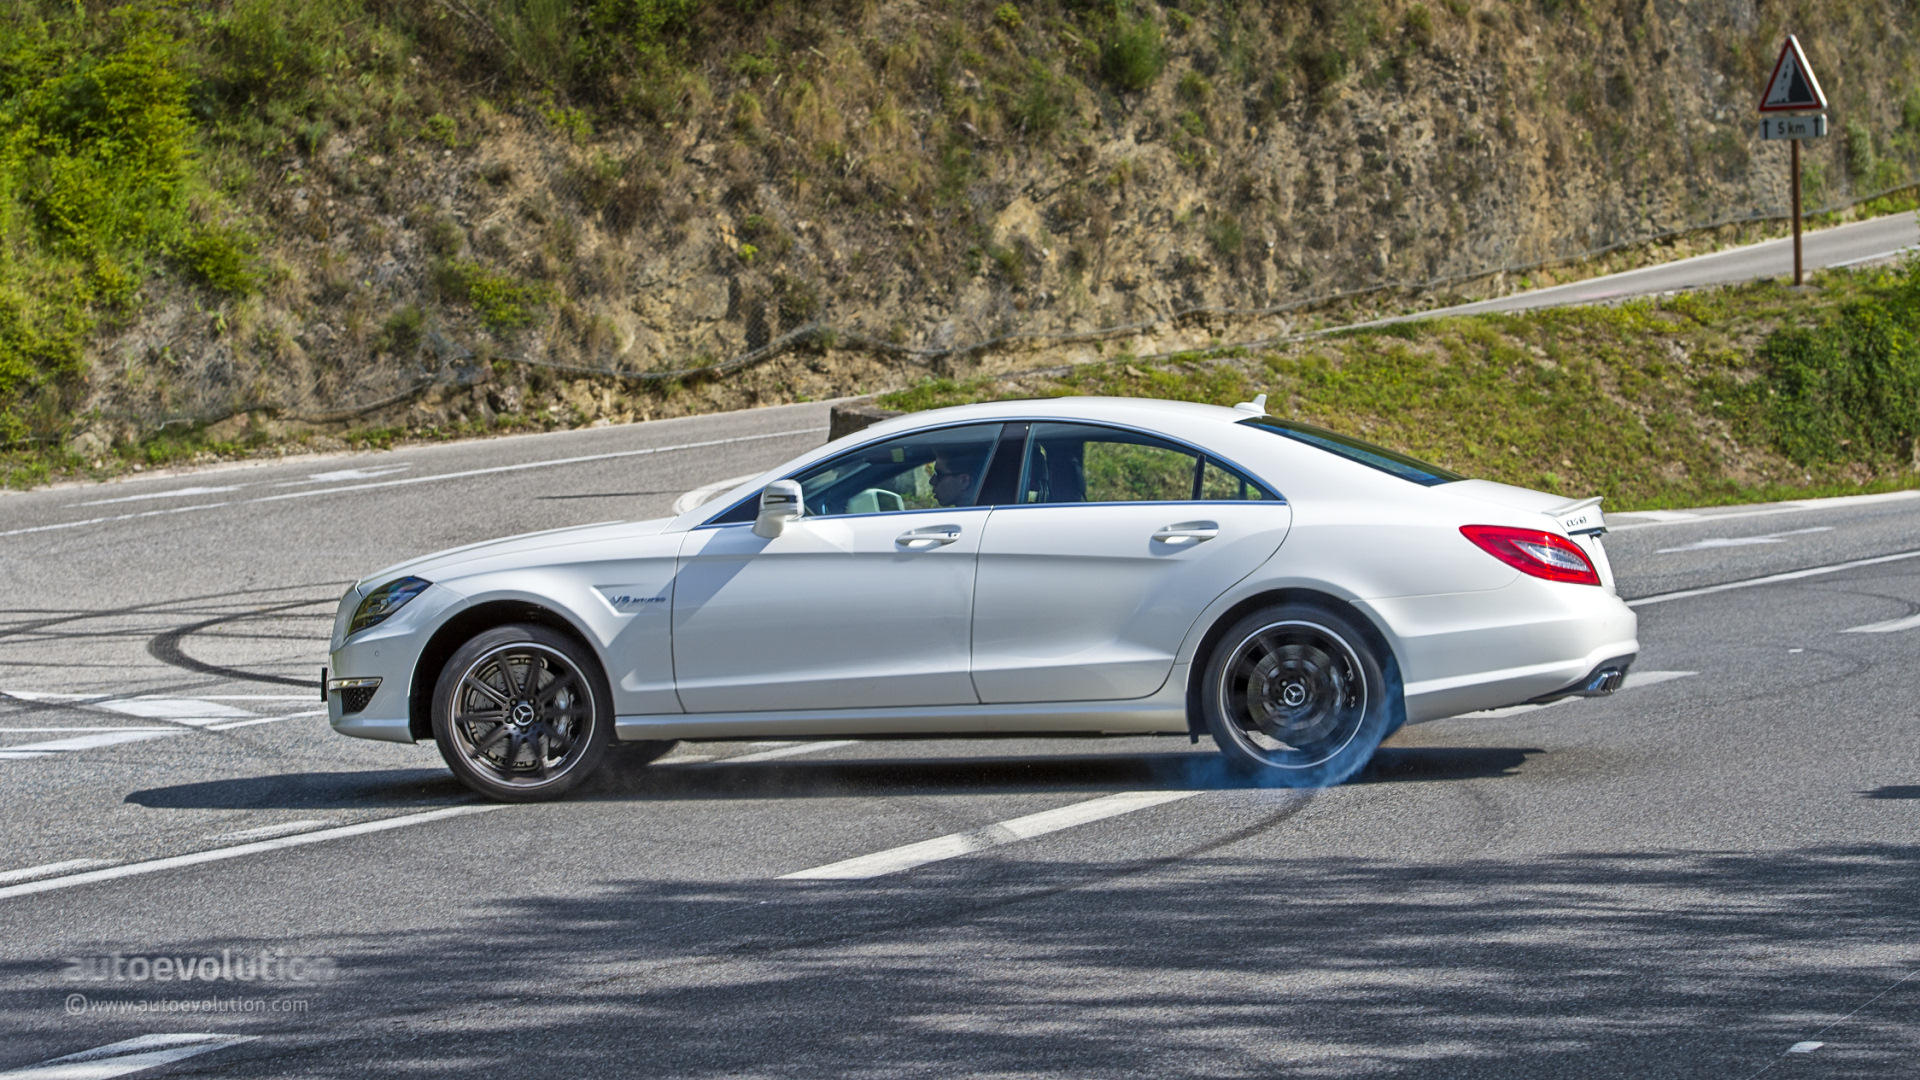 Mercedes benz cls 63 amg 4matic tested by autoevolution for 63 mercedes benz